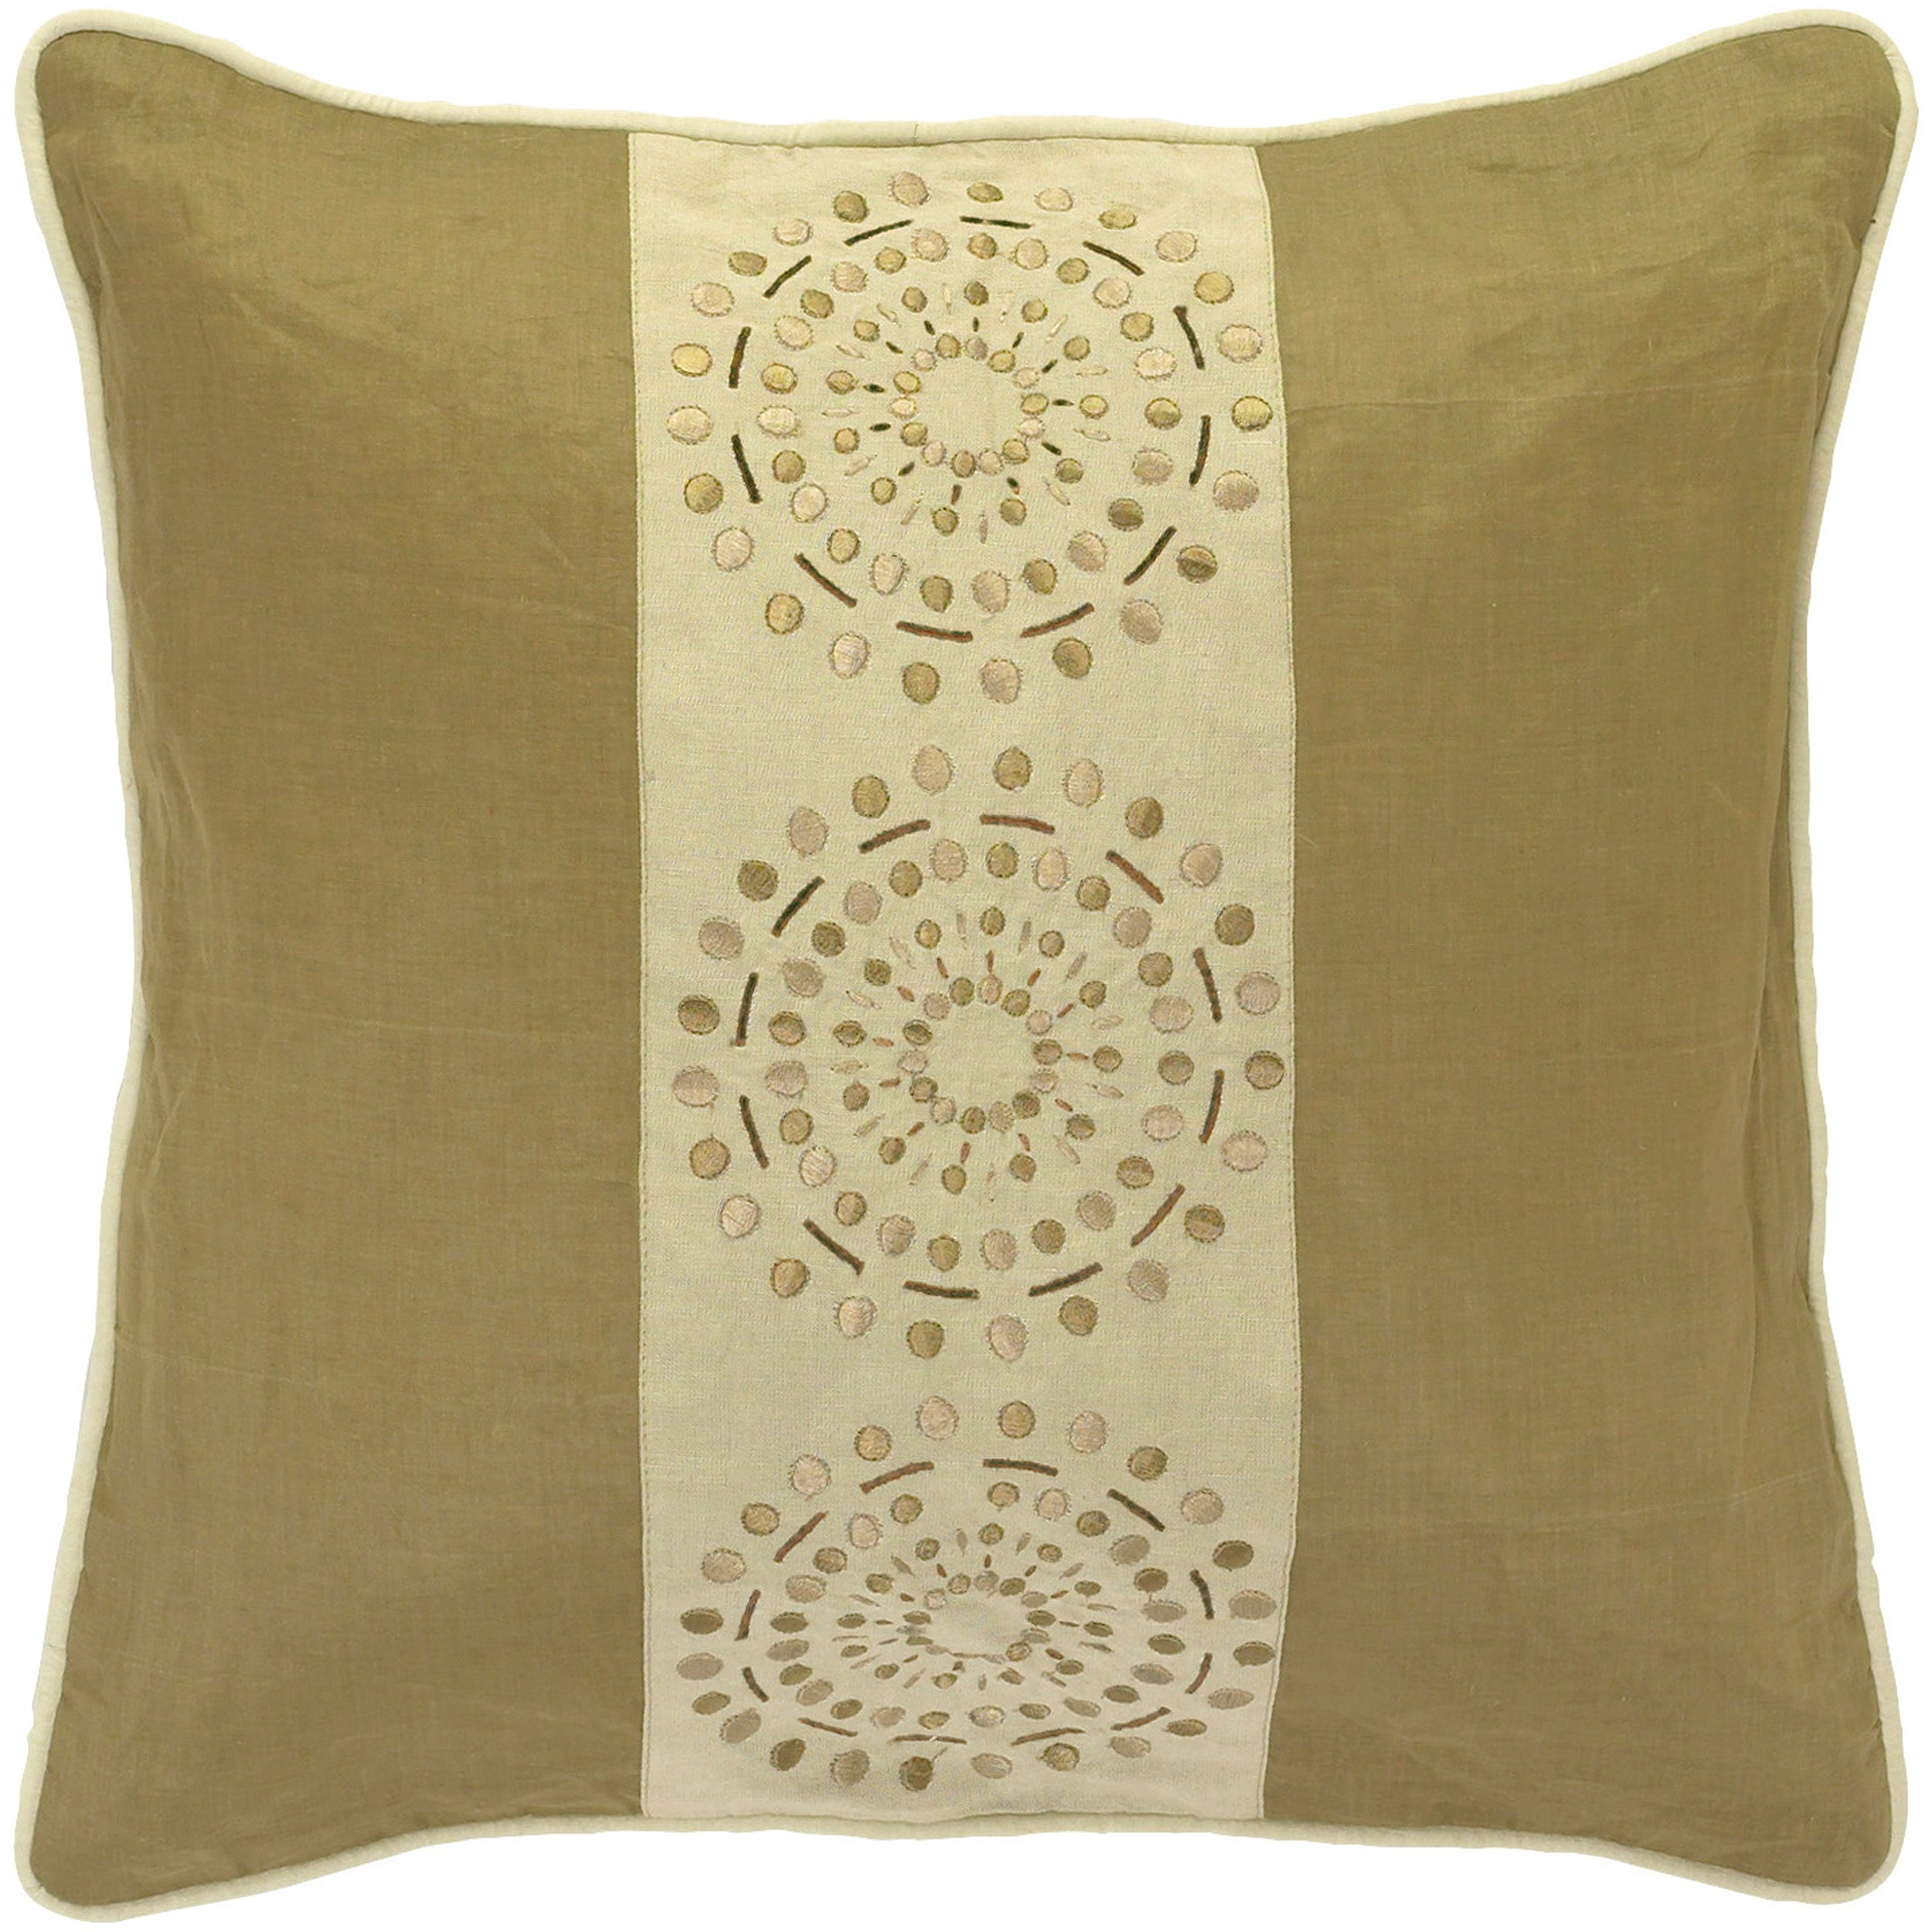 Where To Find Decorative Pillows